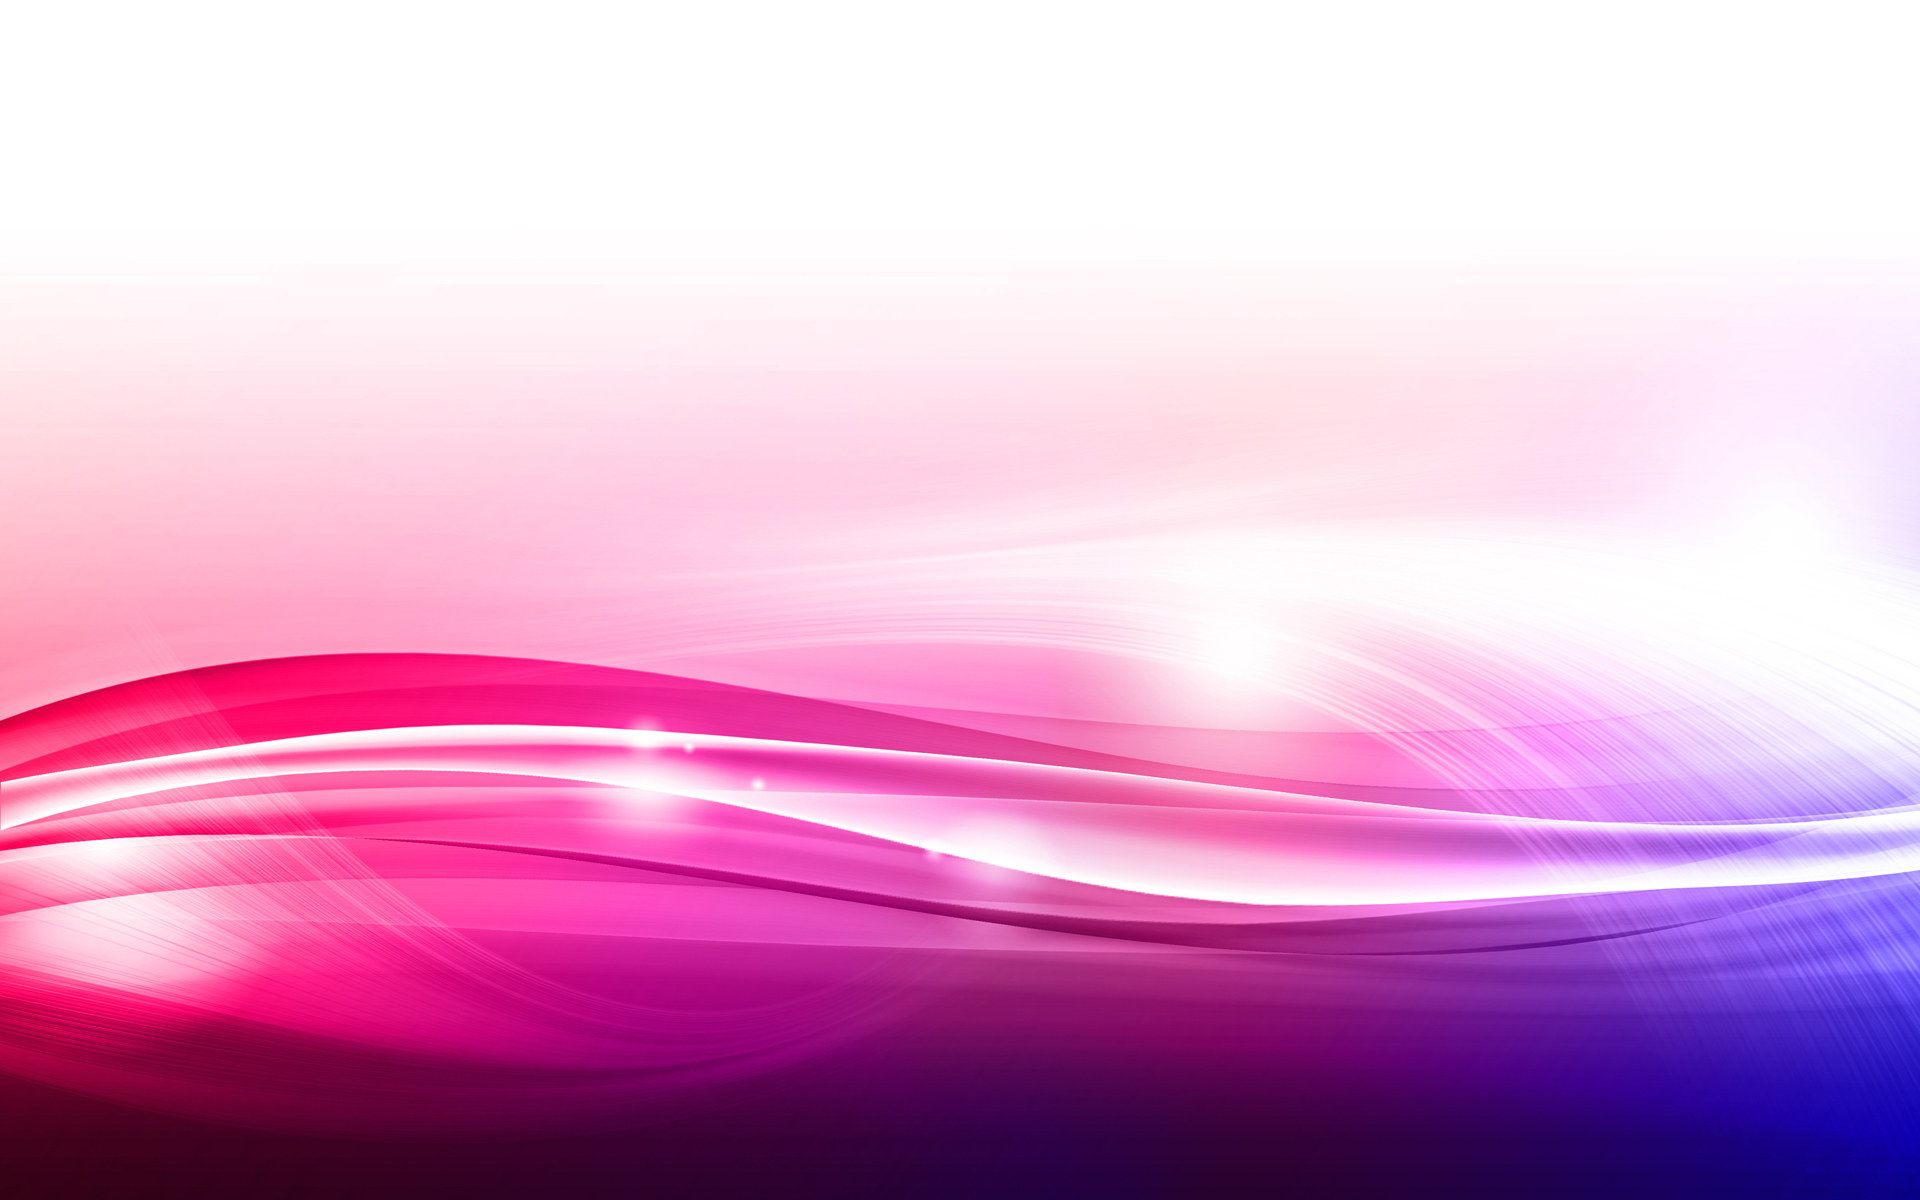 Pink and purple waves gym pinterest wallpaper 3d for 3d wallpaper pink